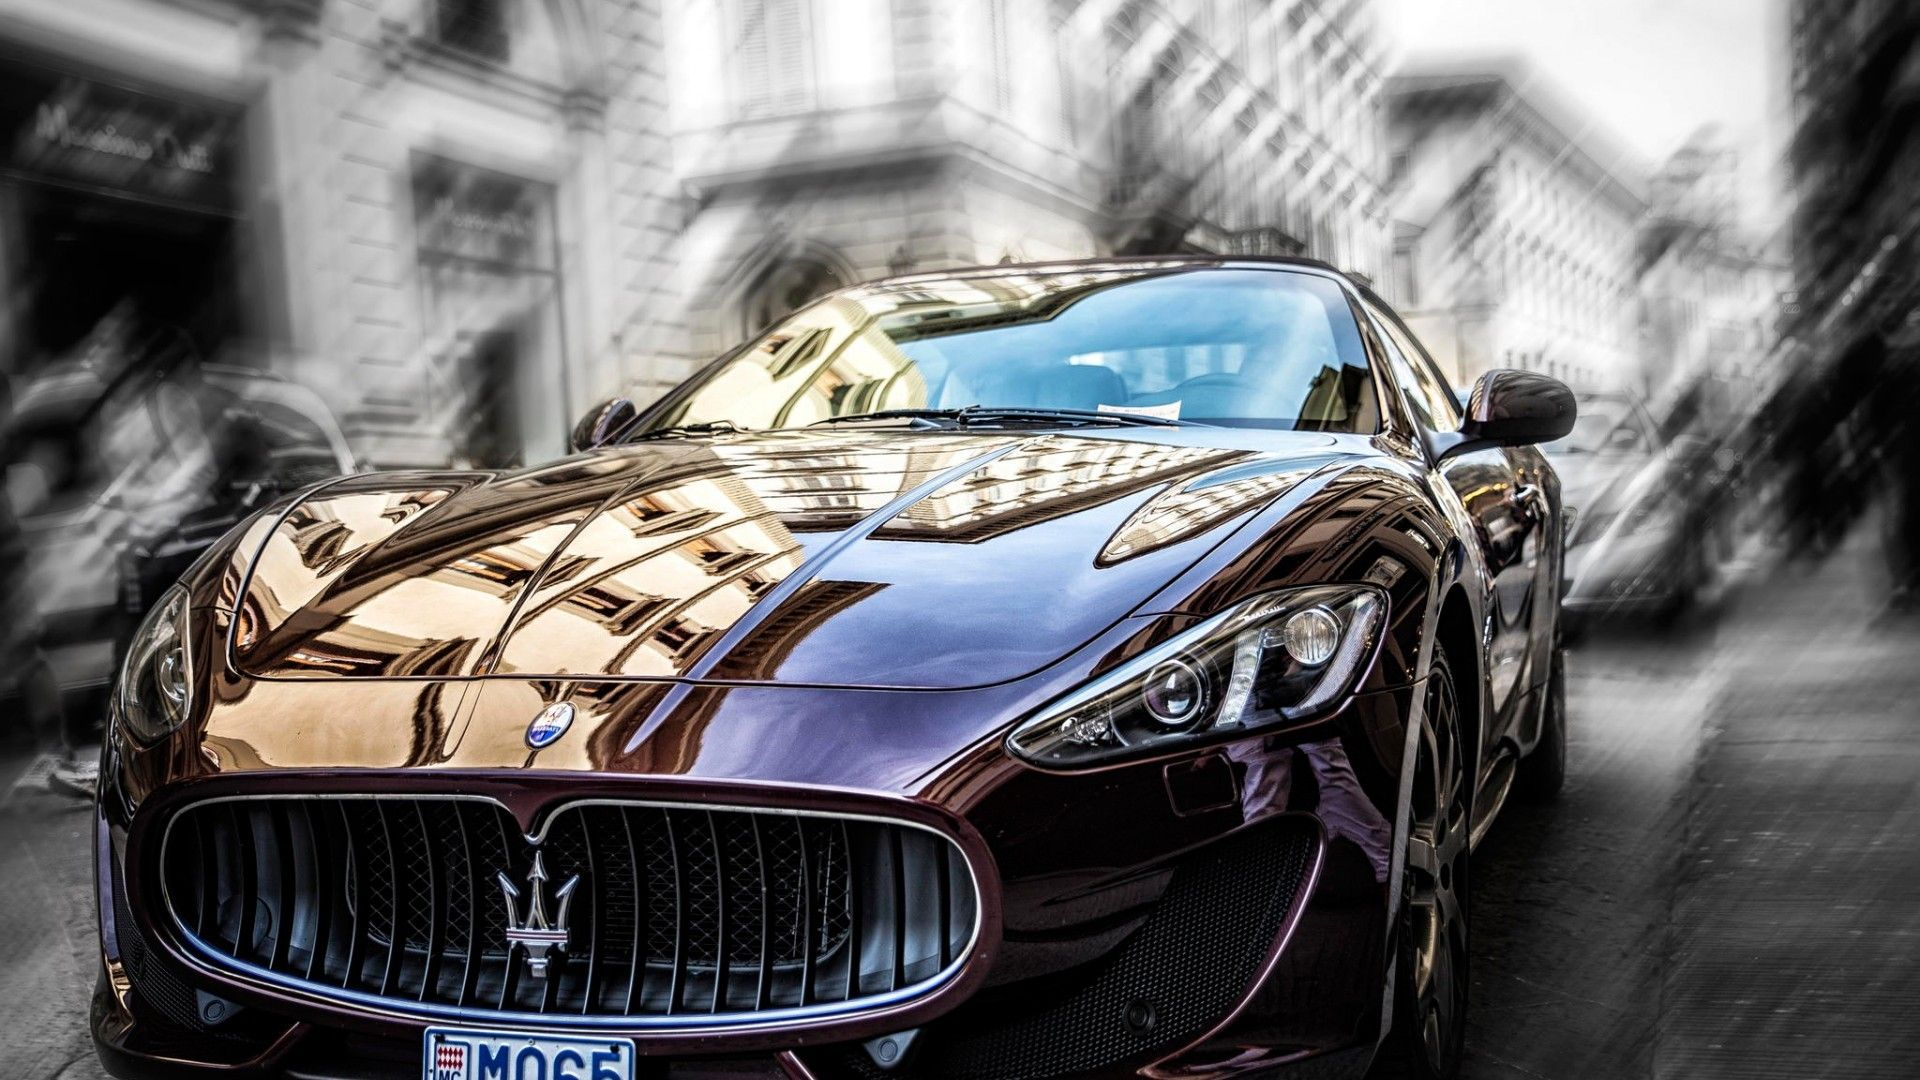 Merveilleux FU Maserati Wallpapers X Px Download